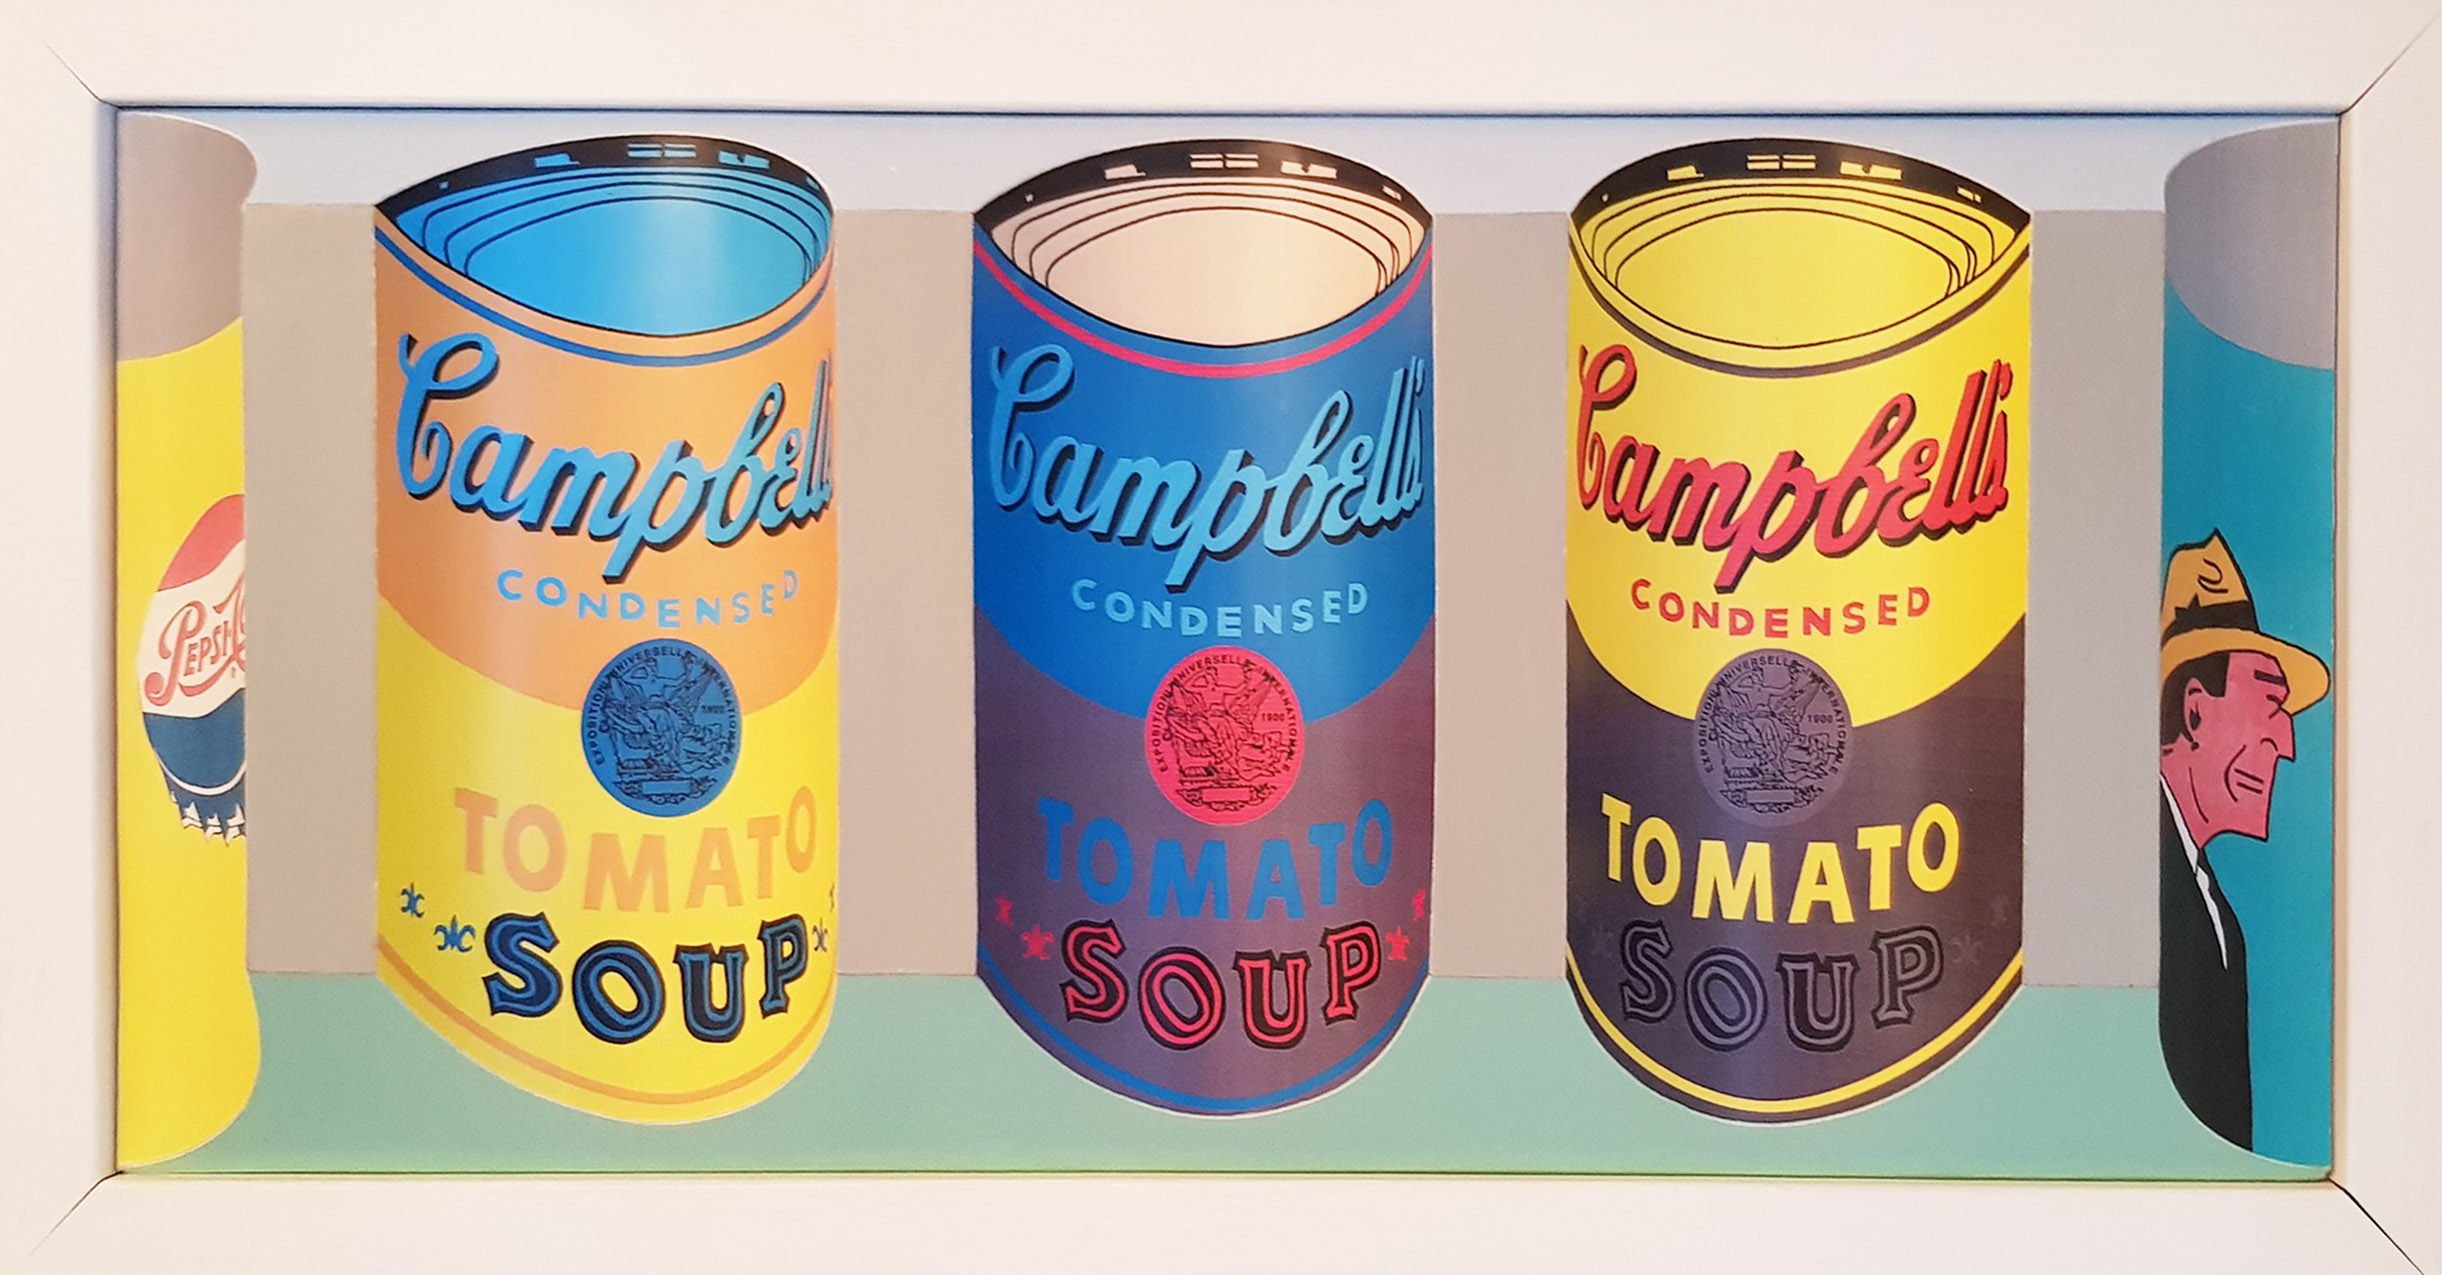 Campbells Soups 3D art by Brian Weavers edited stage3